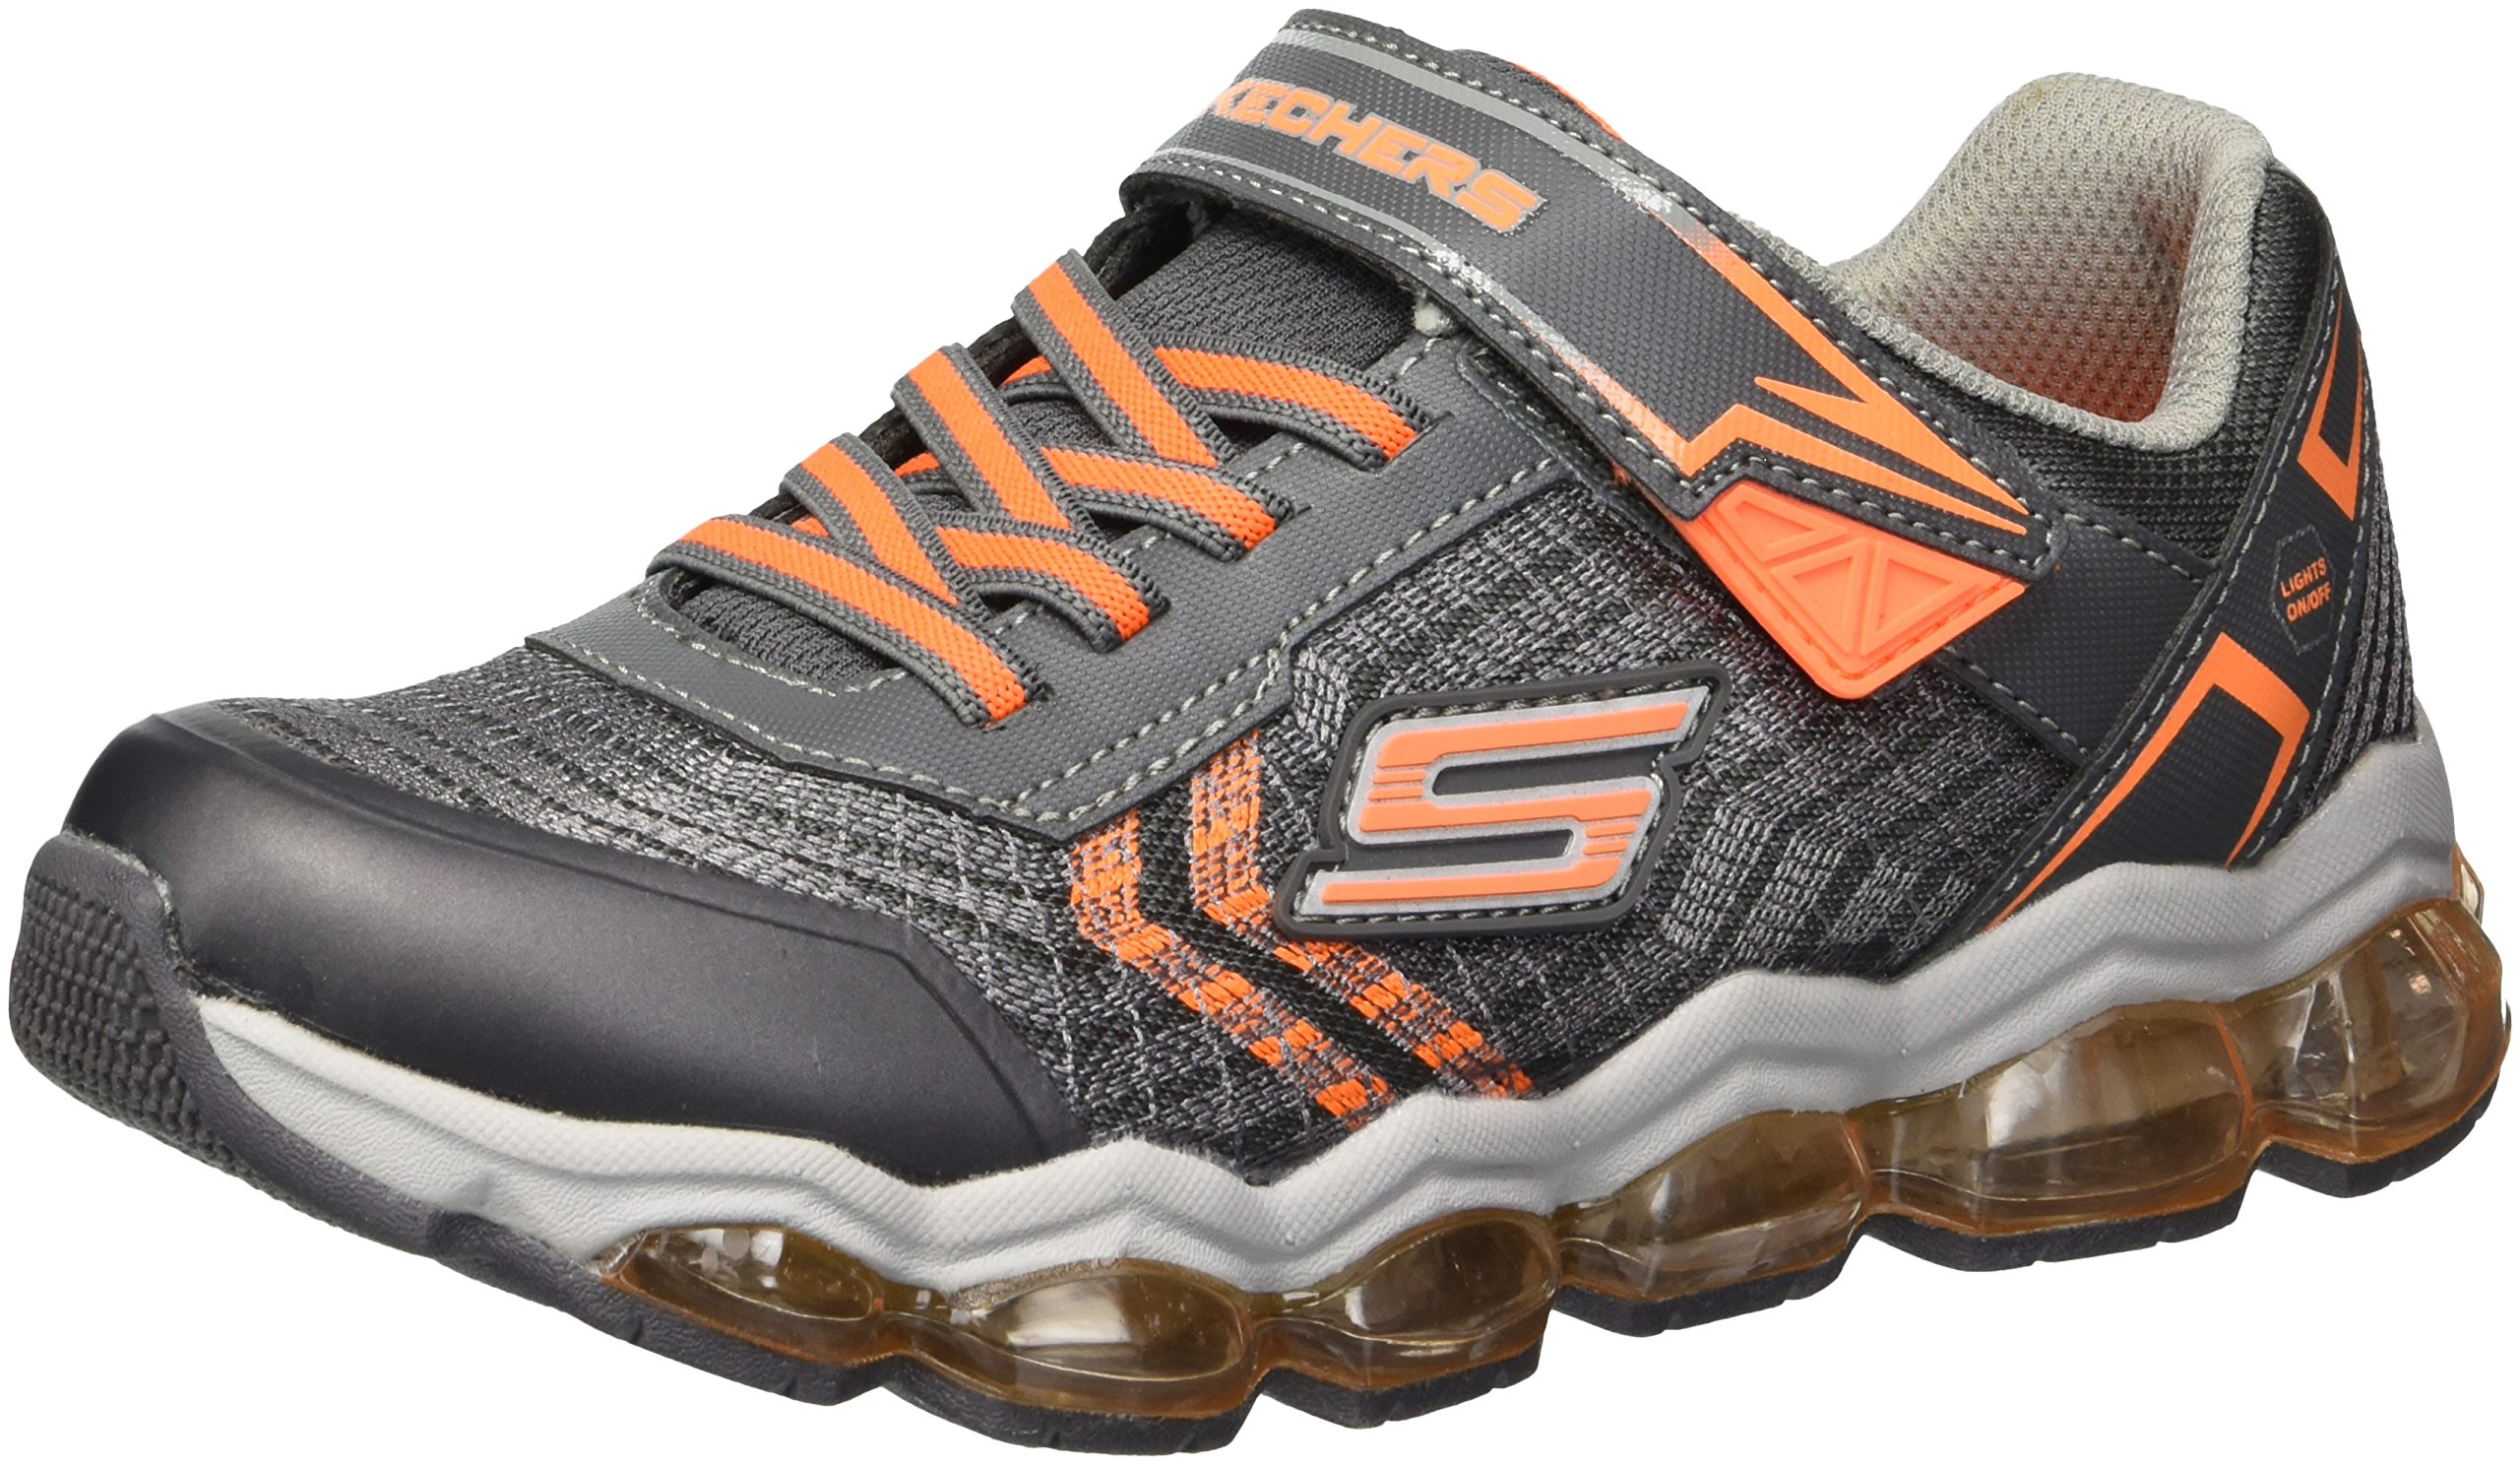 Skechers Kids Boys' Turbo-Flash Sneaker,Charcoal/Orange,3.5 Medium US Big Kid